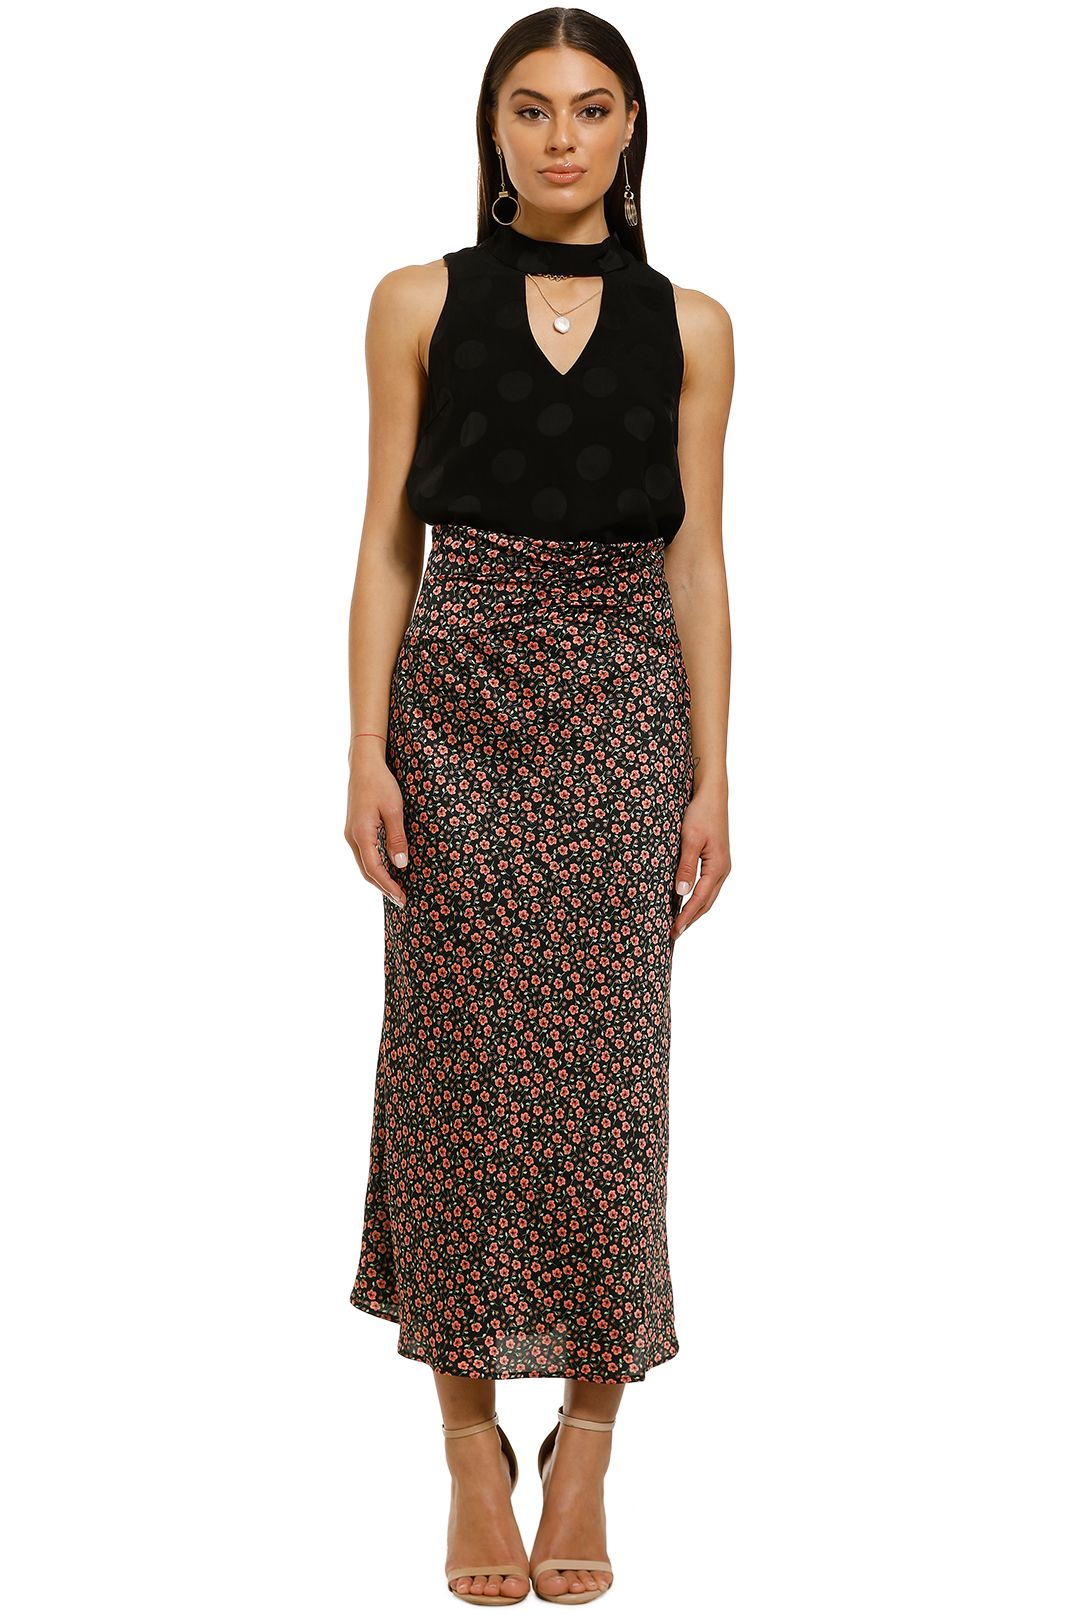 Cooper-St-Bright-Eyed-Top-Black-Polka-Dot-Front